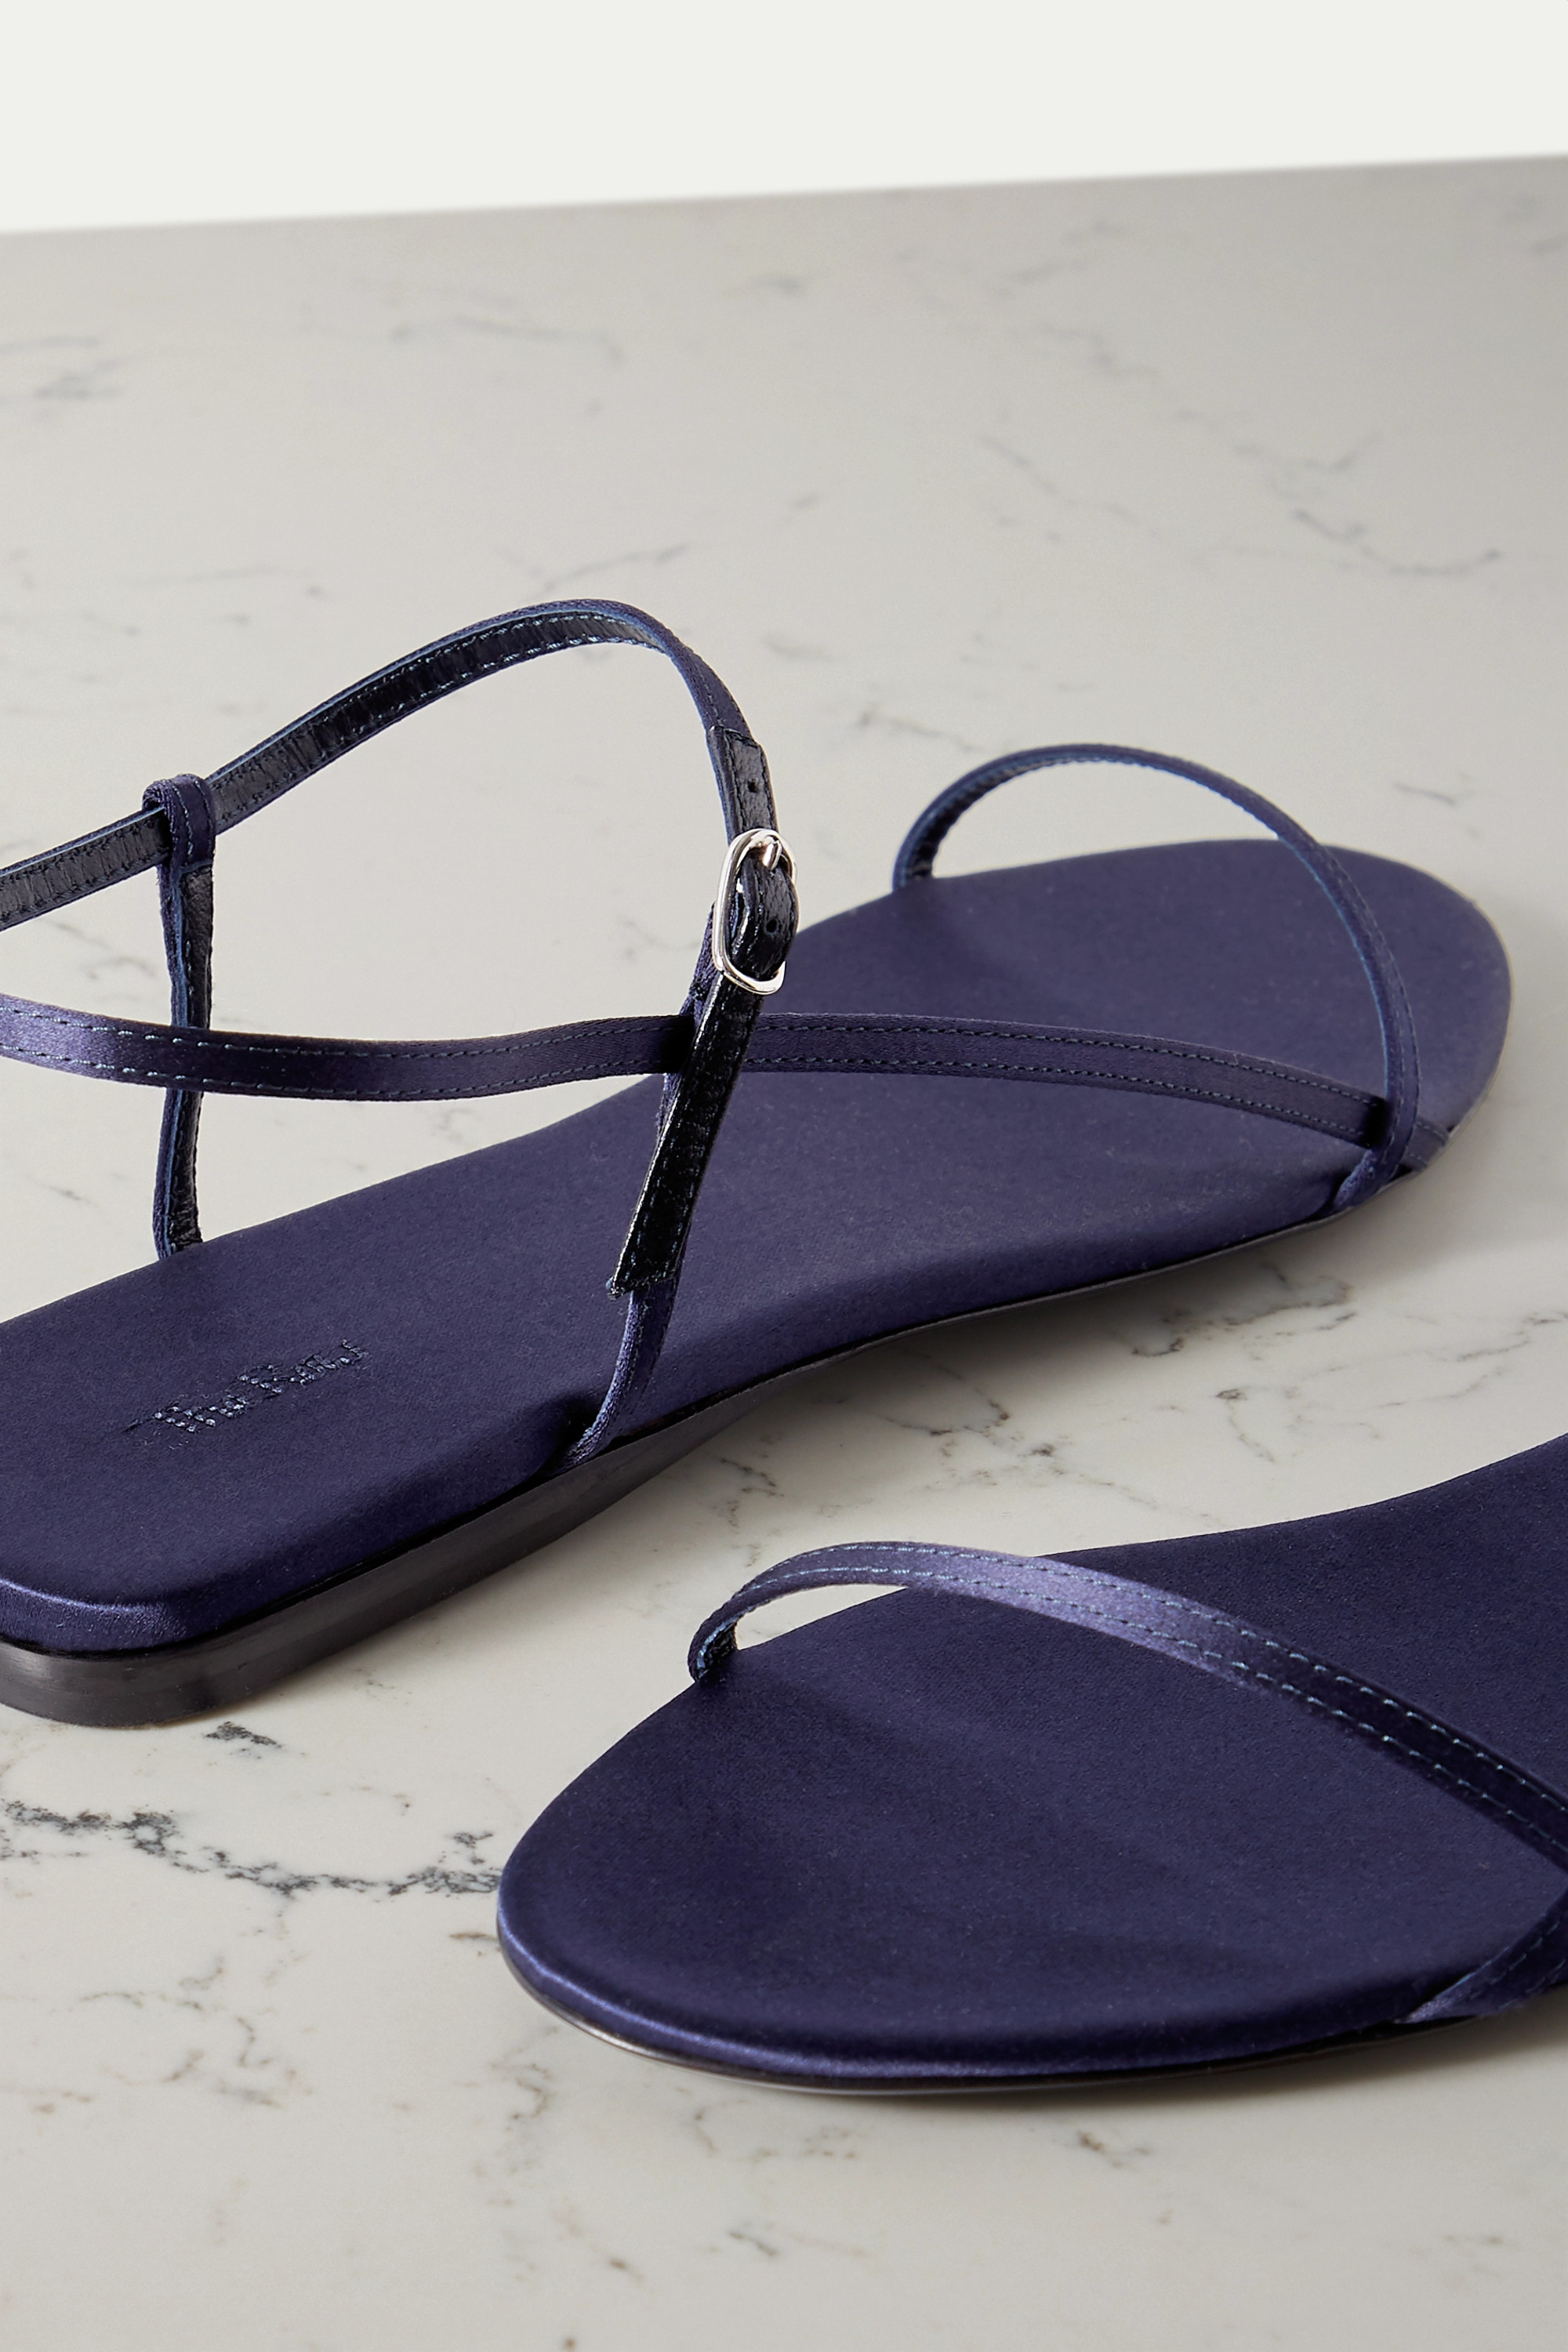 The Row Bare satin sandals